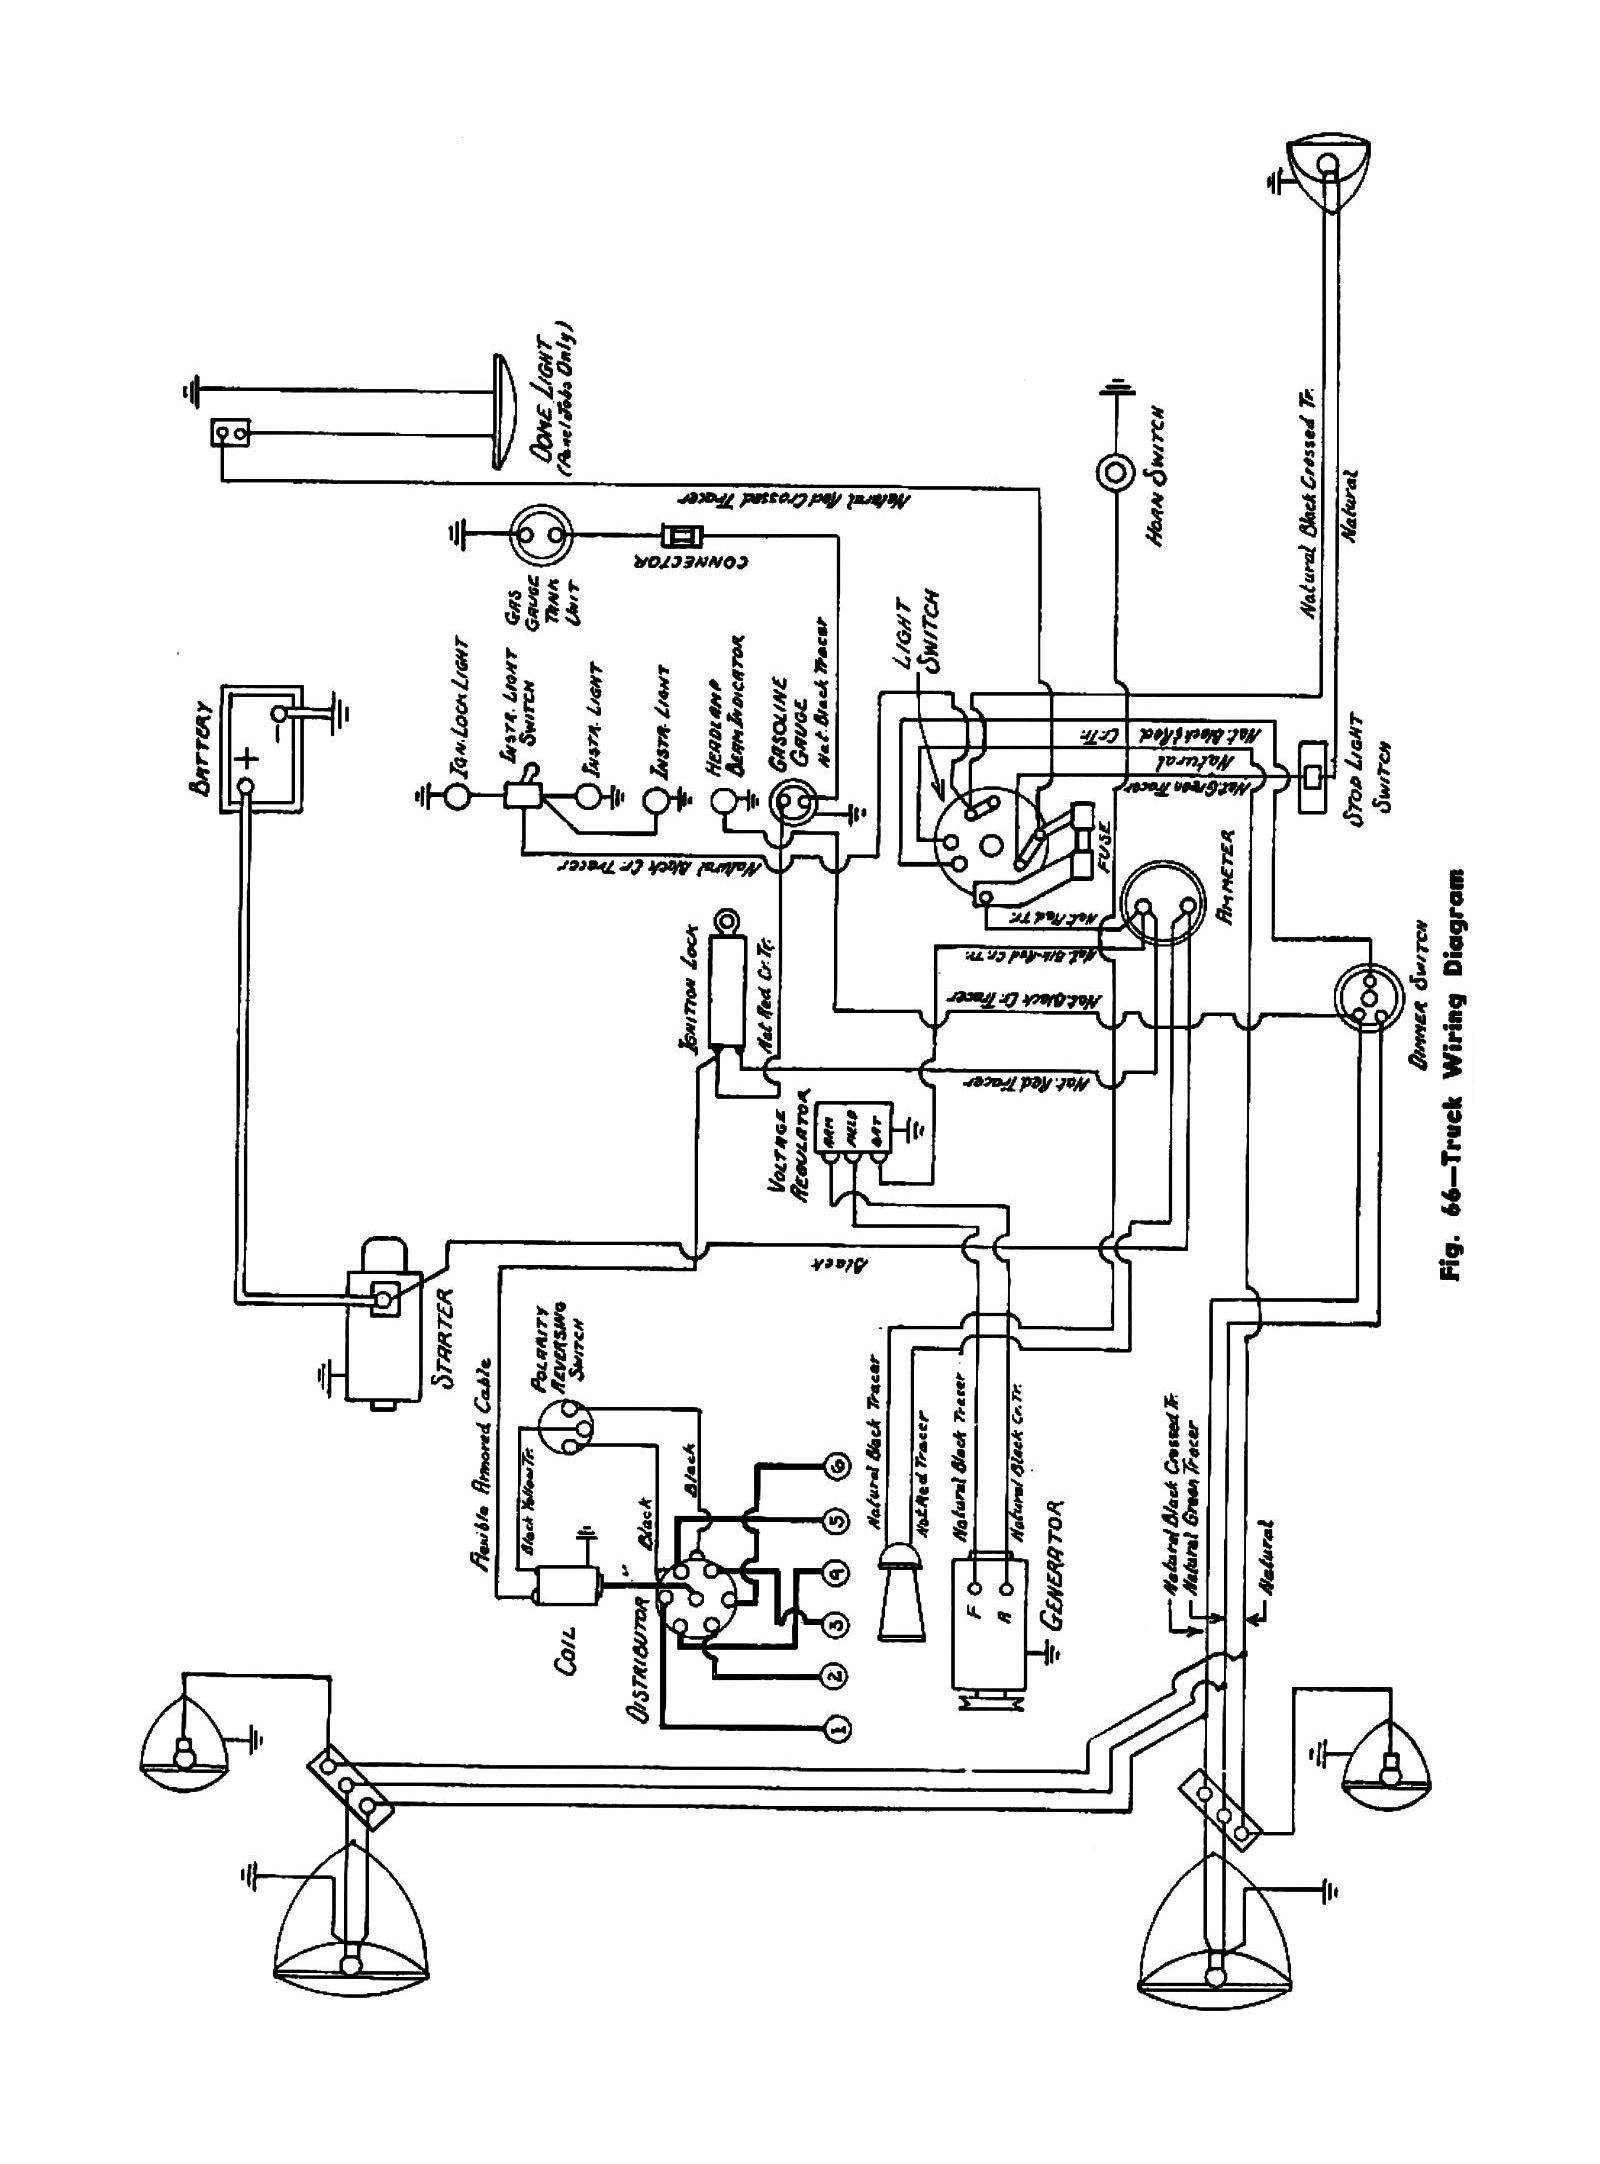 1956 dodge truck wiring harness wiring diagram 1954 dodge pickup wiring diagram